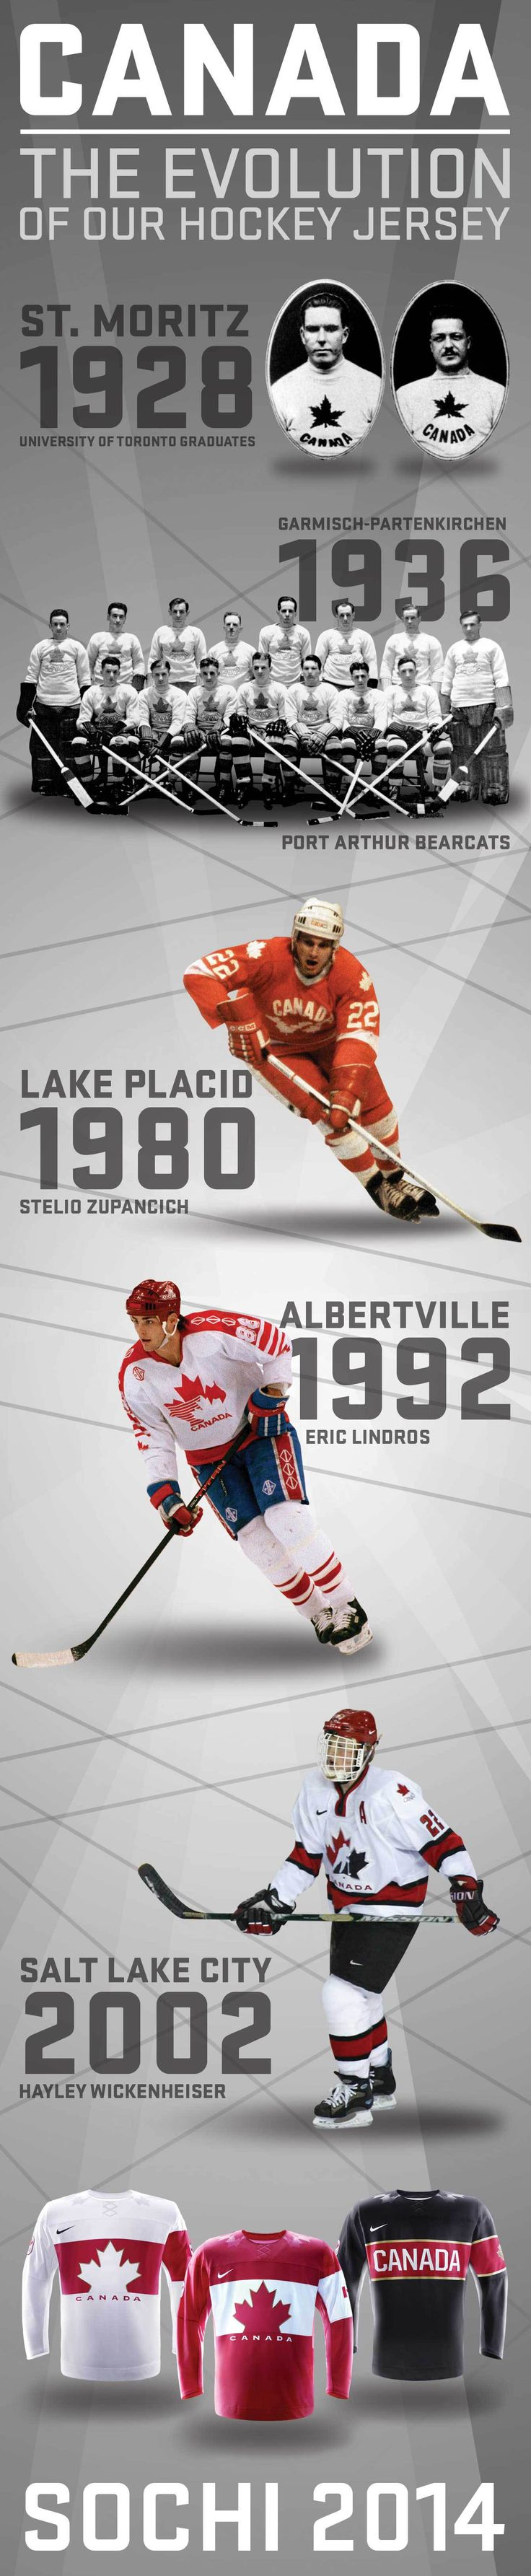 Canadian Olympic Hockey Jersey Evolution graphic